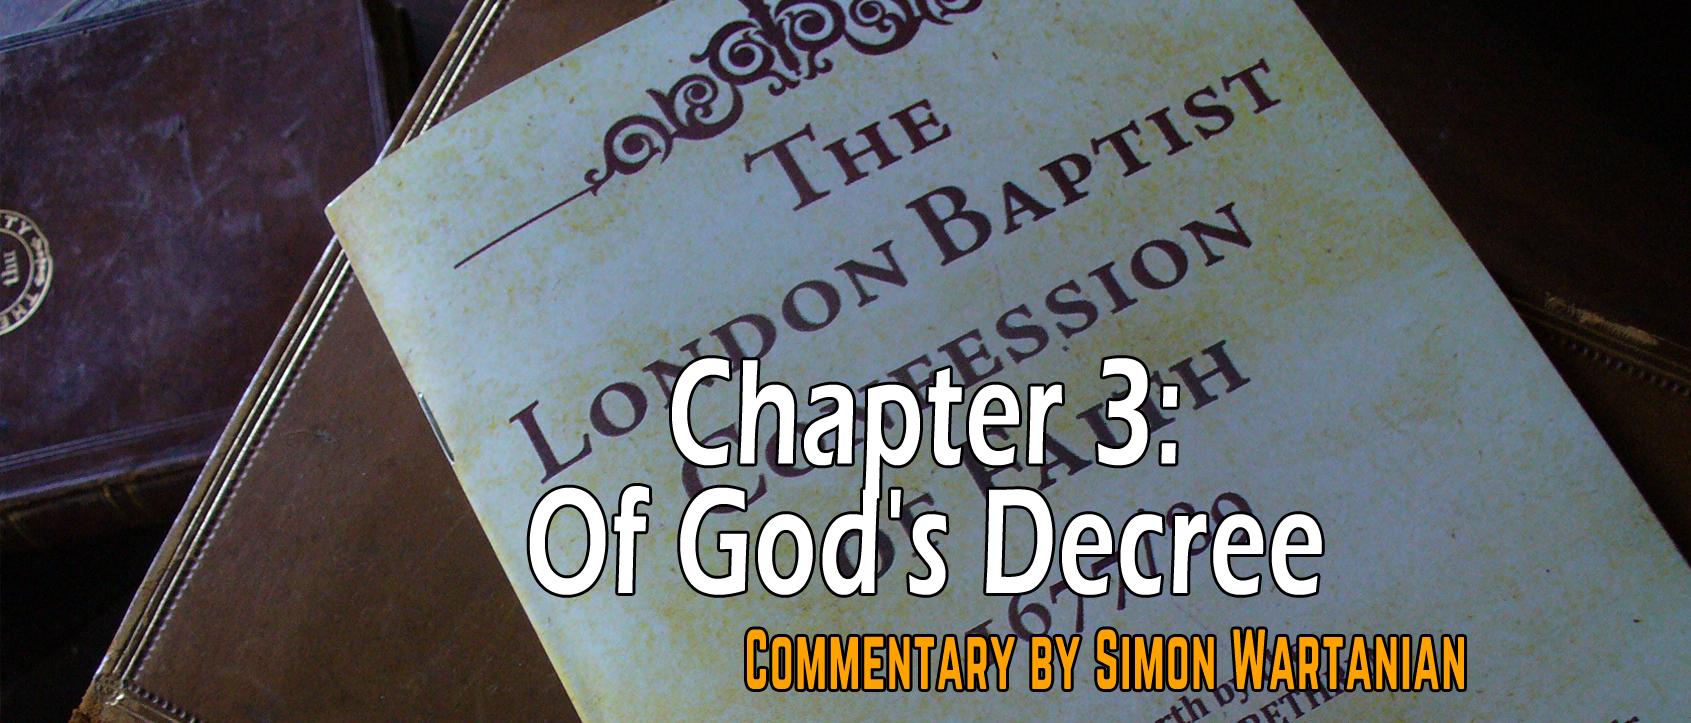 1689 Baptist Confession Chapter 3: Of God's Decree - Commentary